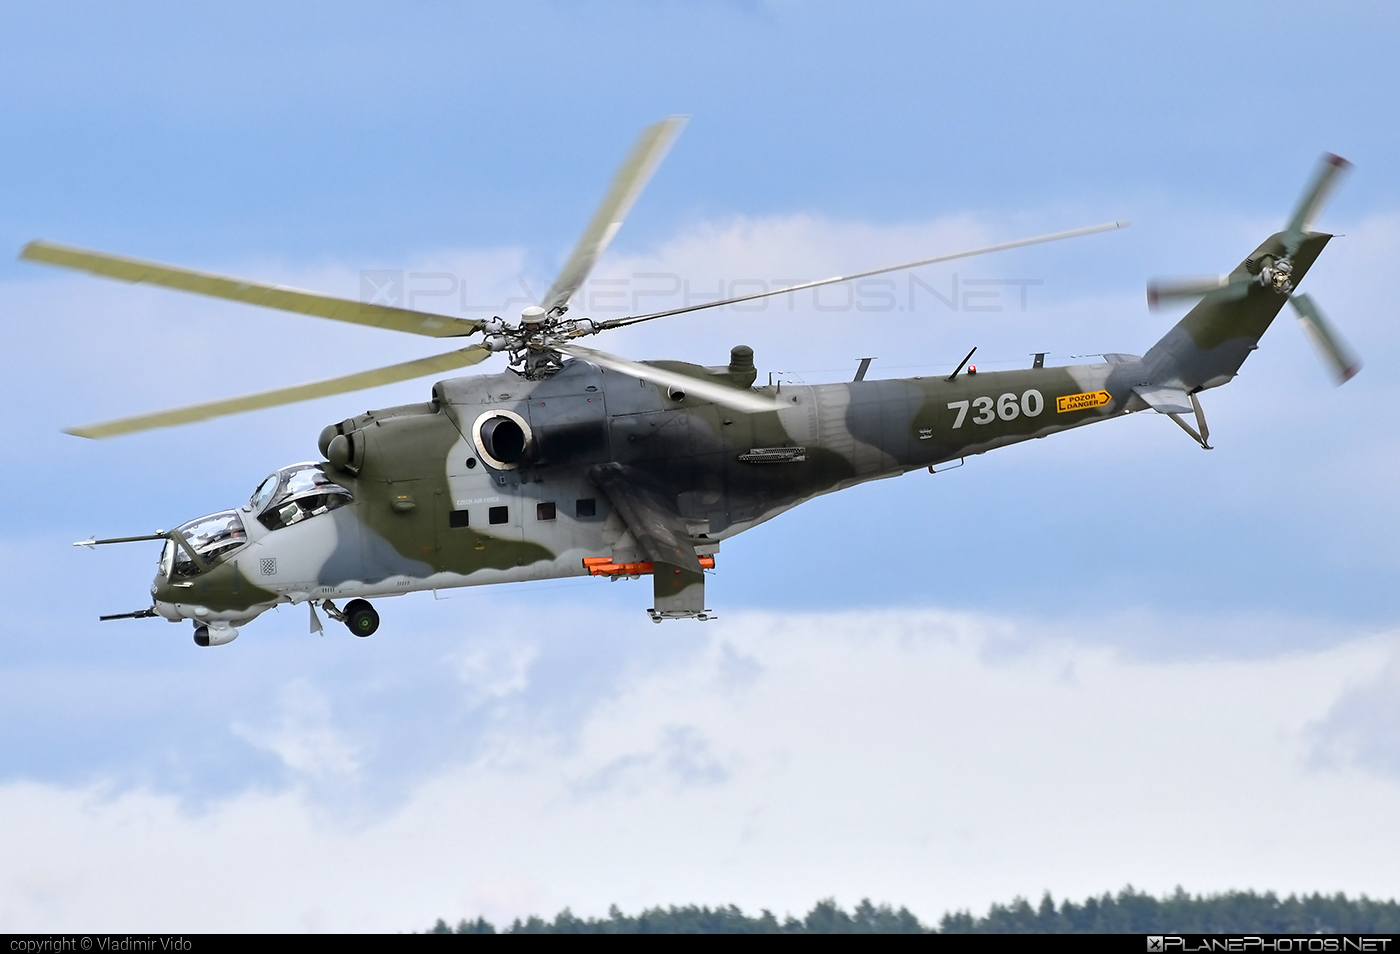 Mil Mi-35 - 7360 operated by Vzdušné síly AČR (Czech Air Force) #czechairforce #mi35 #mil #milhelicopters #vzdusnesilyacr